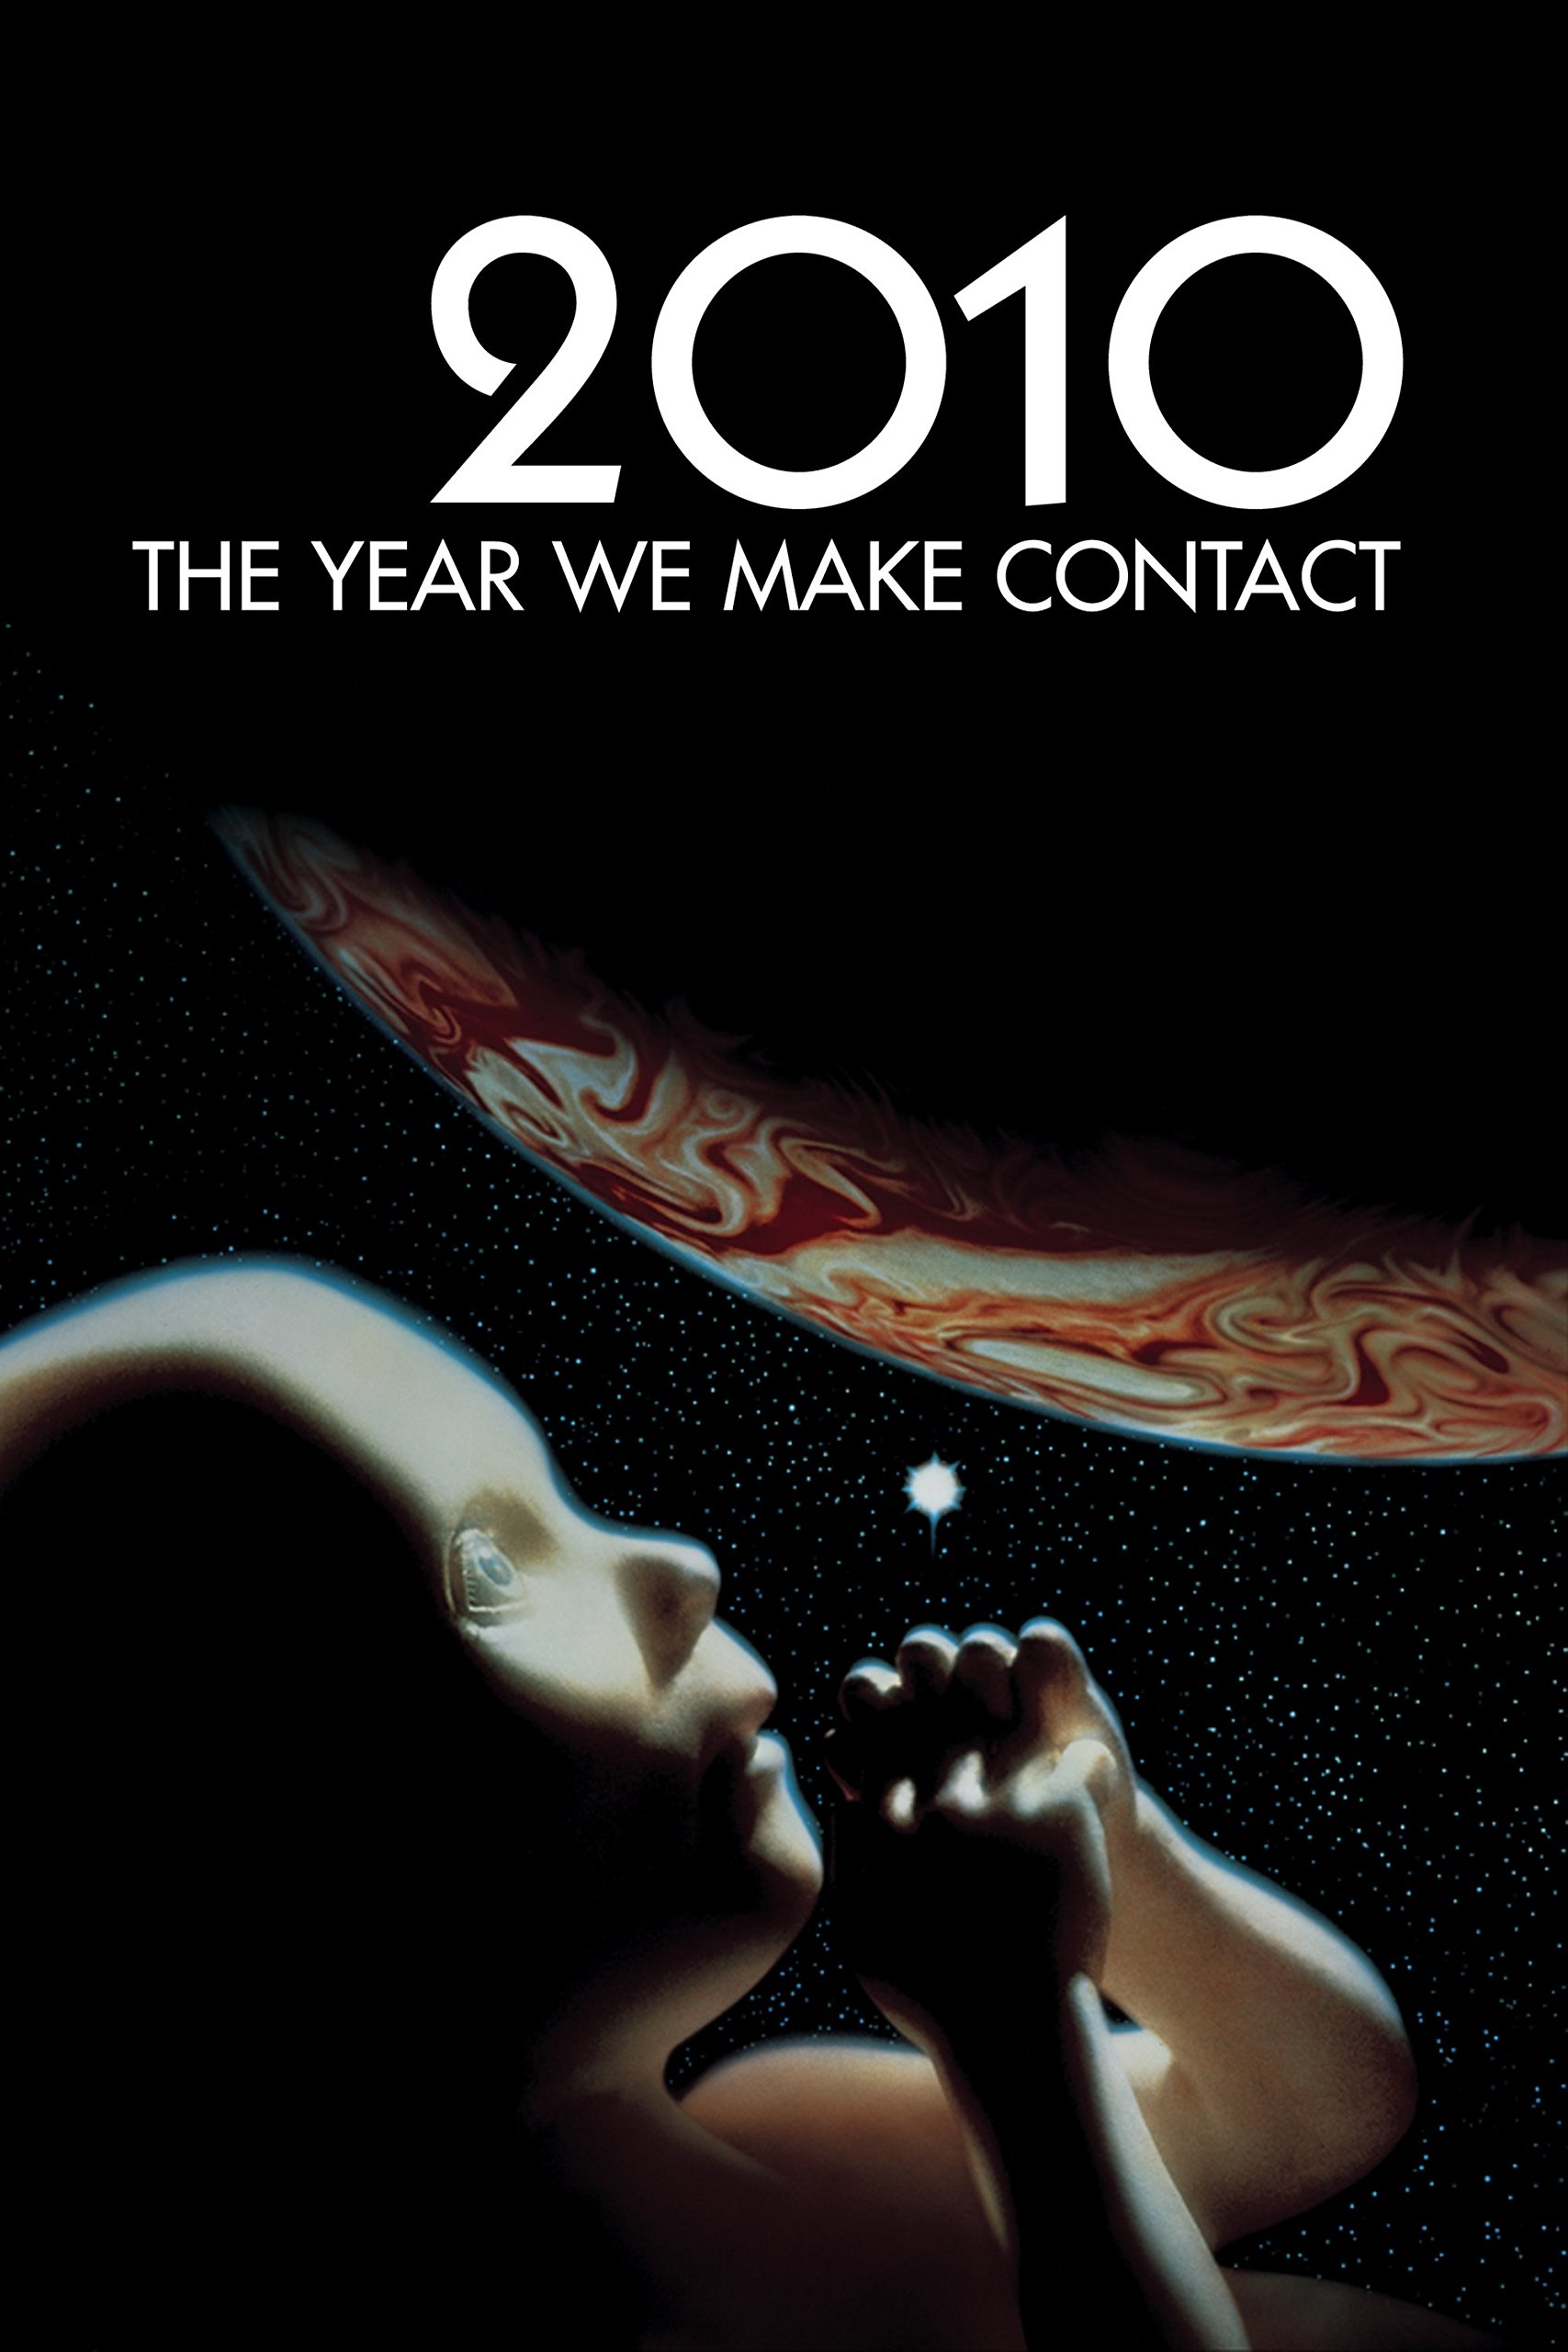 Amazon.com: 2010: The Year We Make Contact: Roy Scheider, Douglas Rain,  John Lithgow, Candice Bergen: Amazon Digital Services LLC